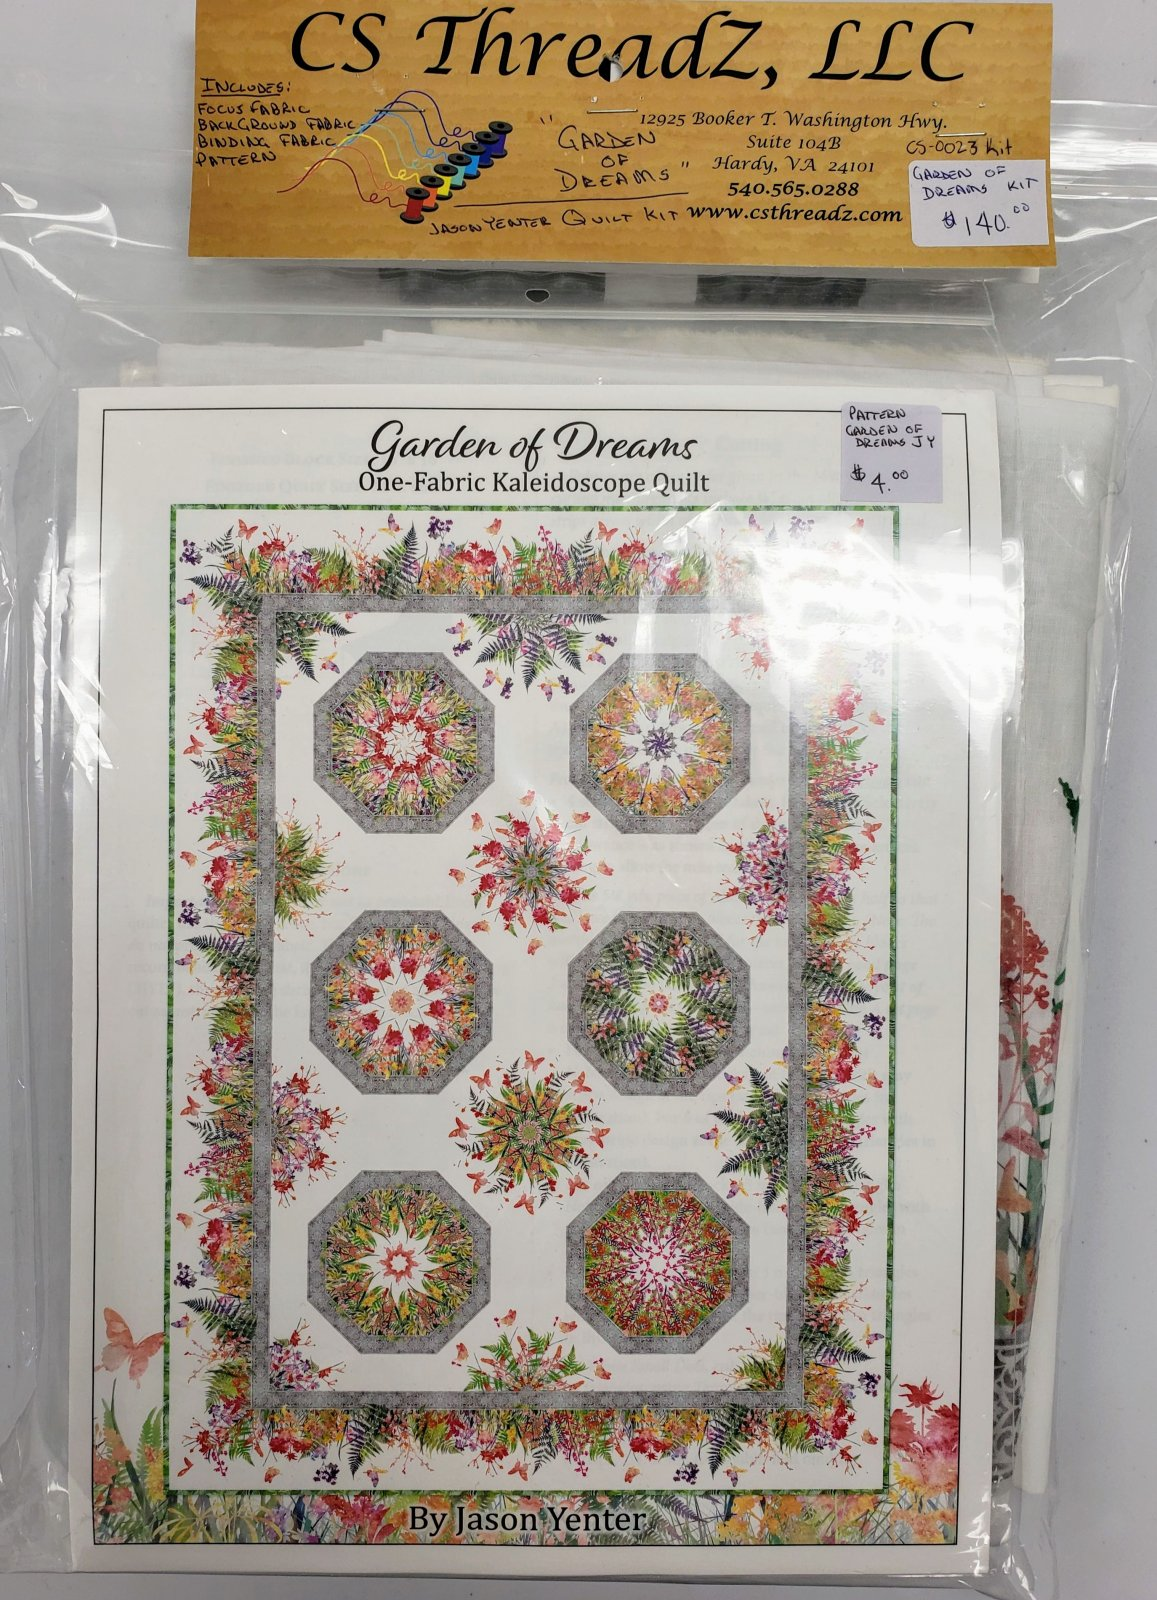 GARDEN OF DREAMS CS-0023 KIT